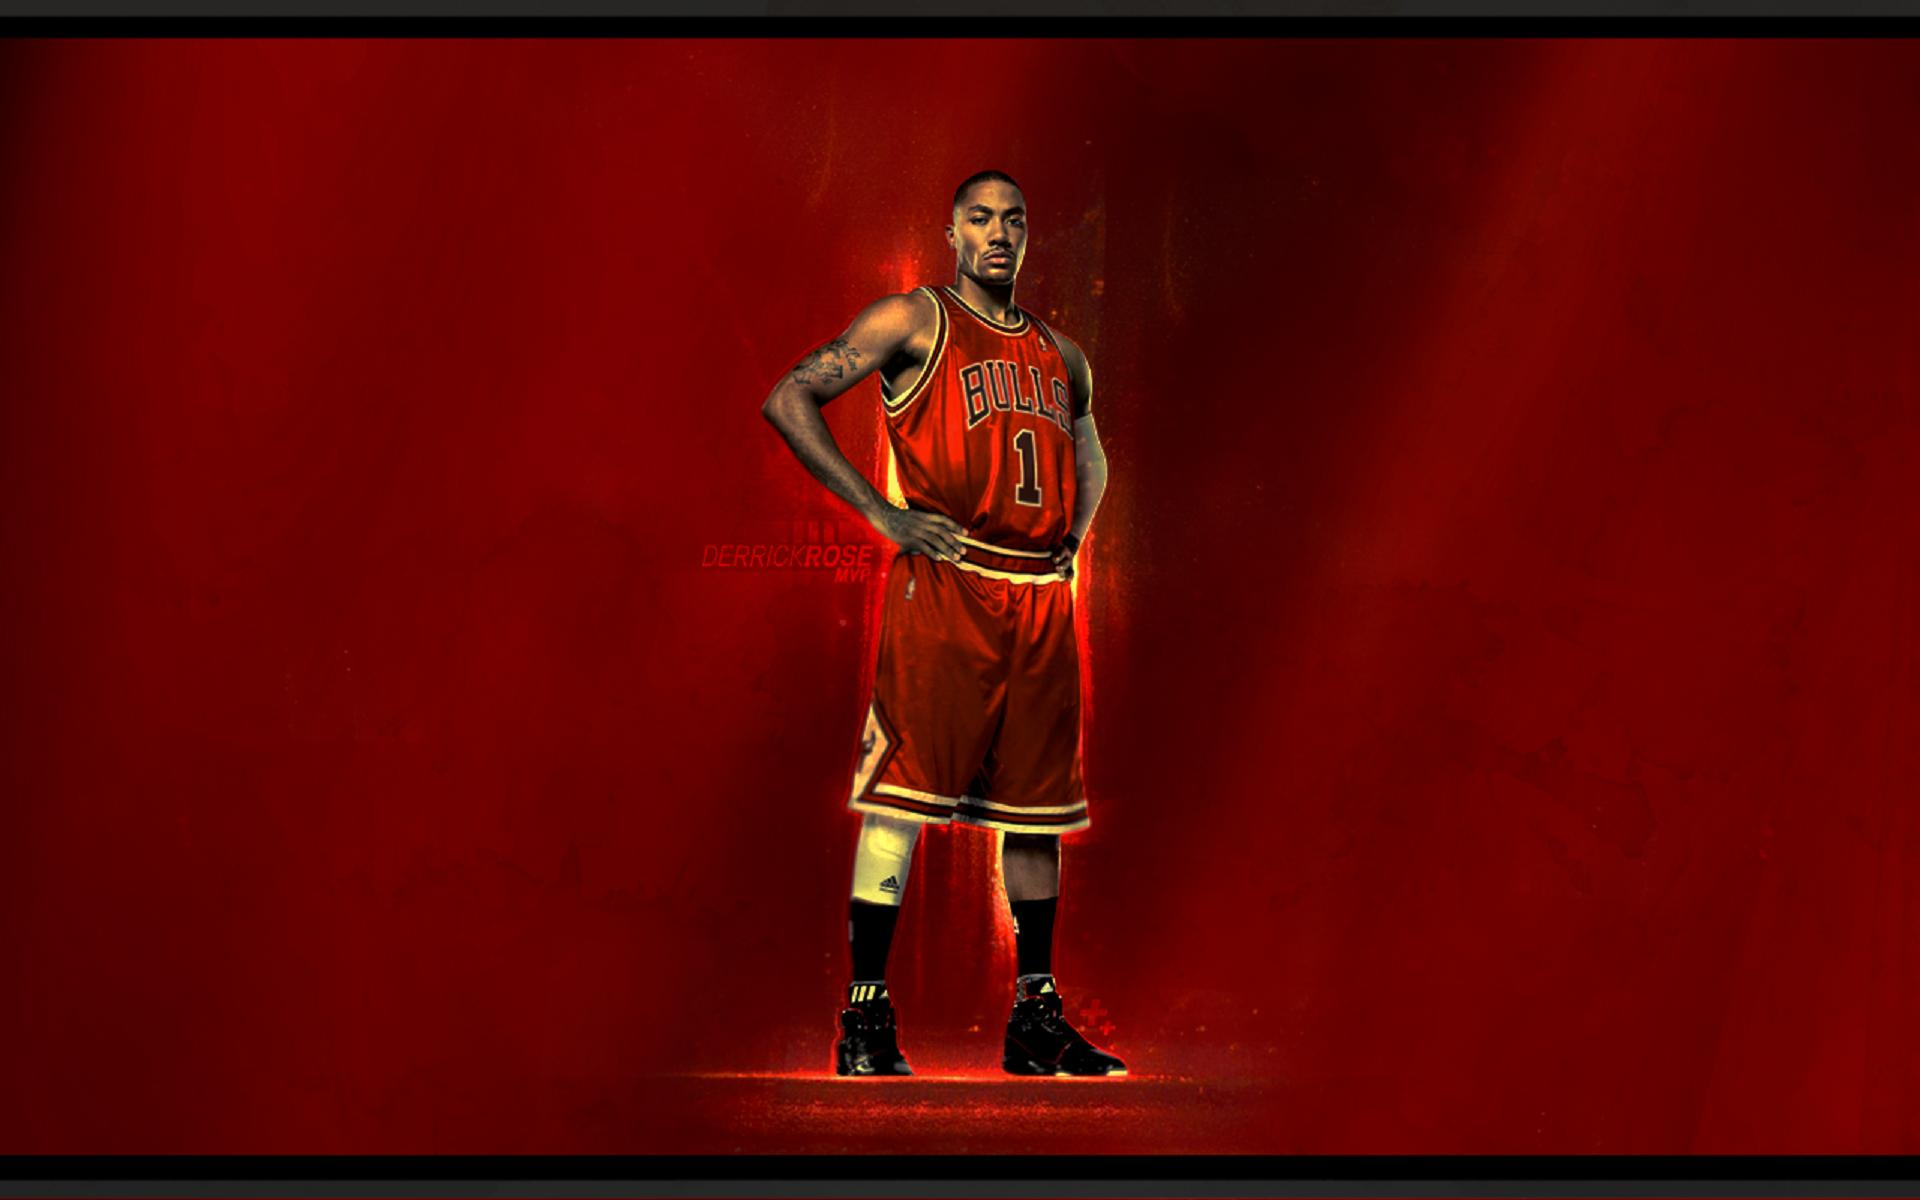 Derrick Rose 2015 Wallpapers 1920x1200